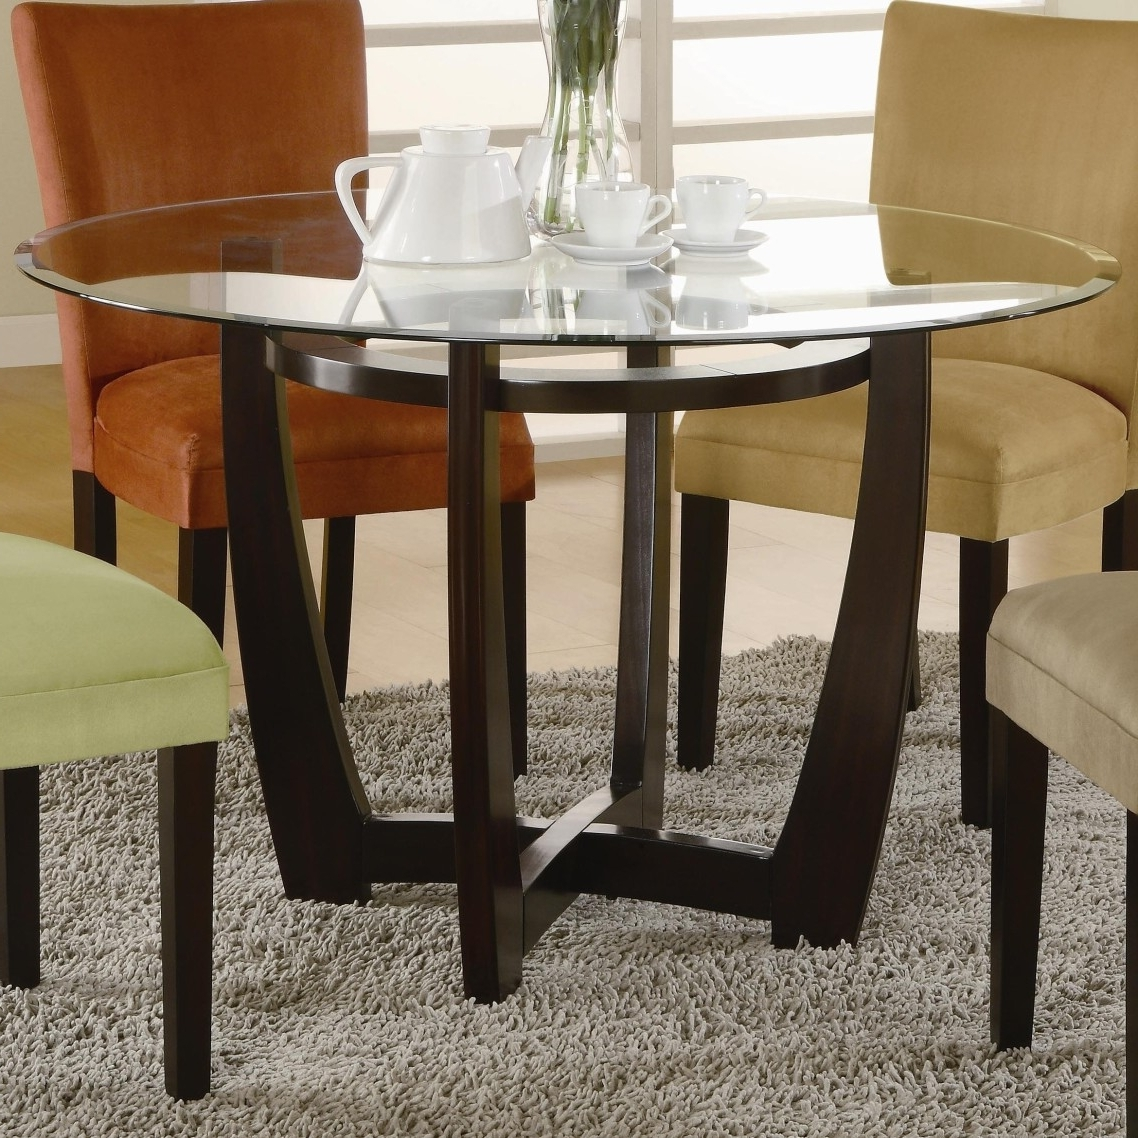 Well Known Curved Glass Dining Tables Intended For Curved Black Stained Oak Wood Legs Dining Table With Csrossed (View 22 of 25)